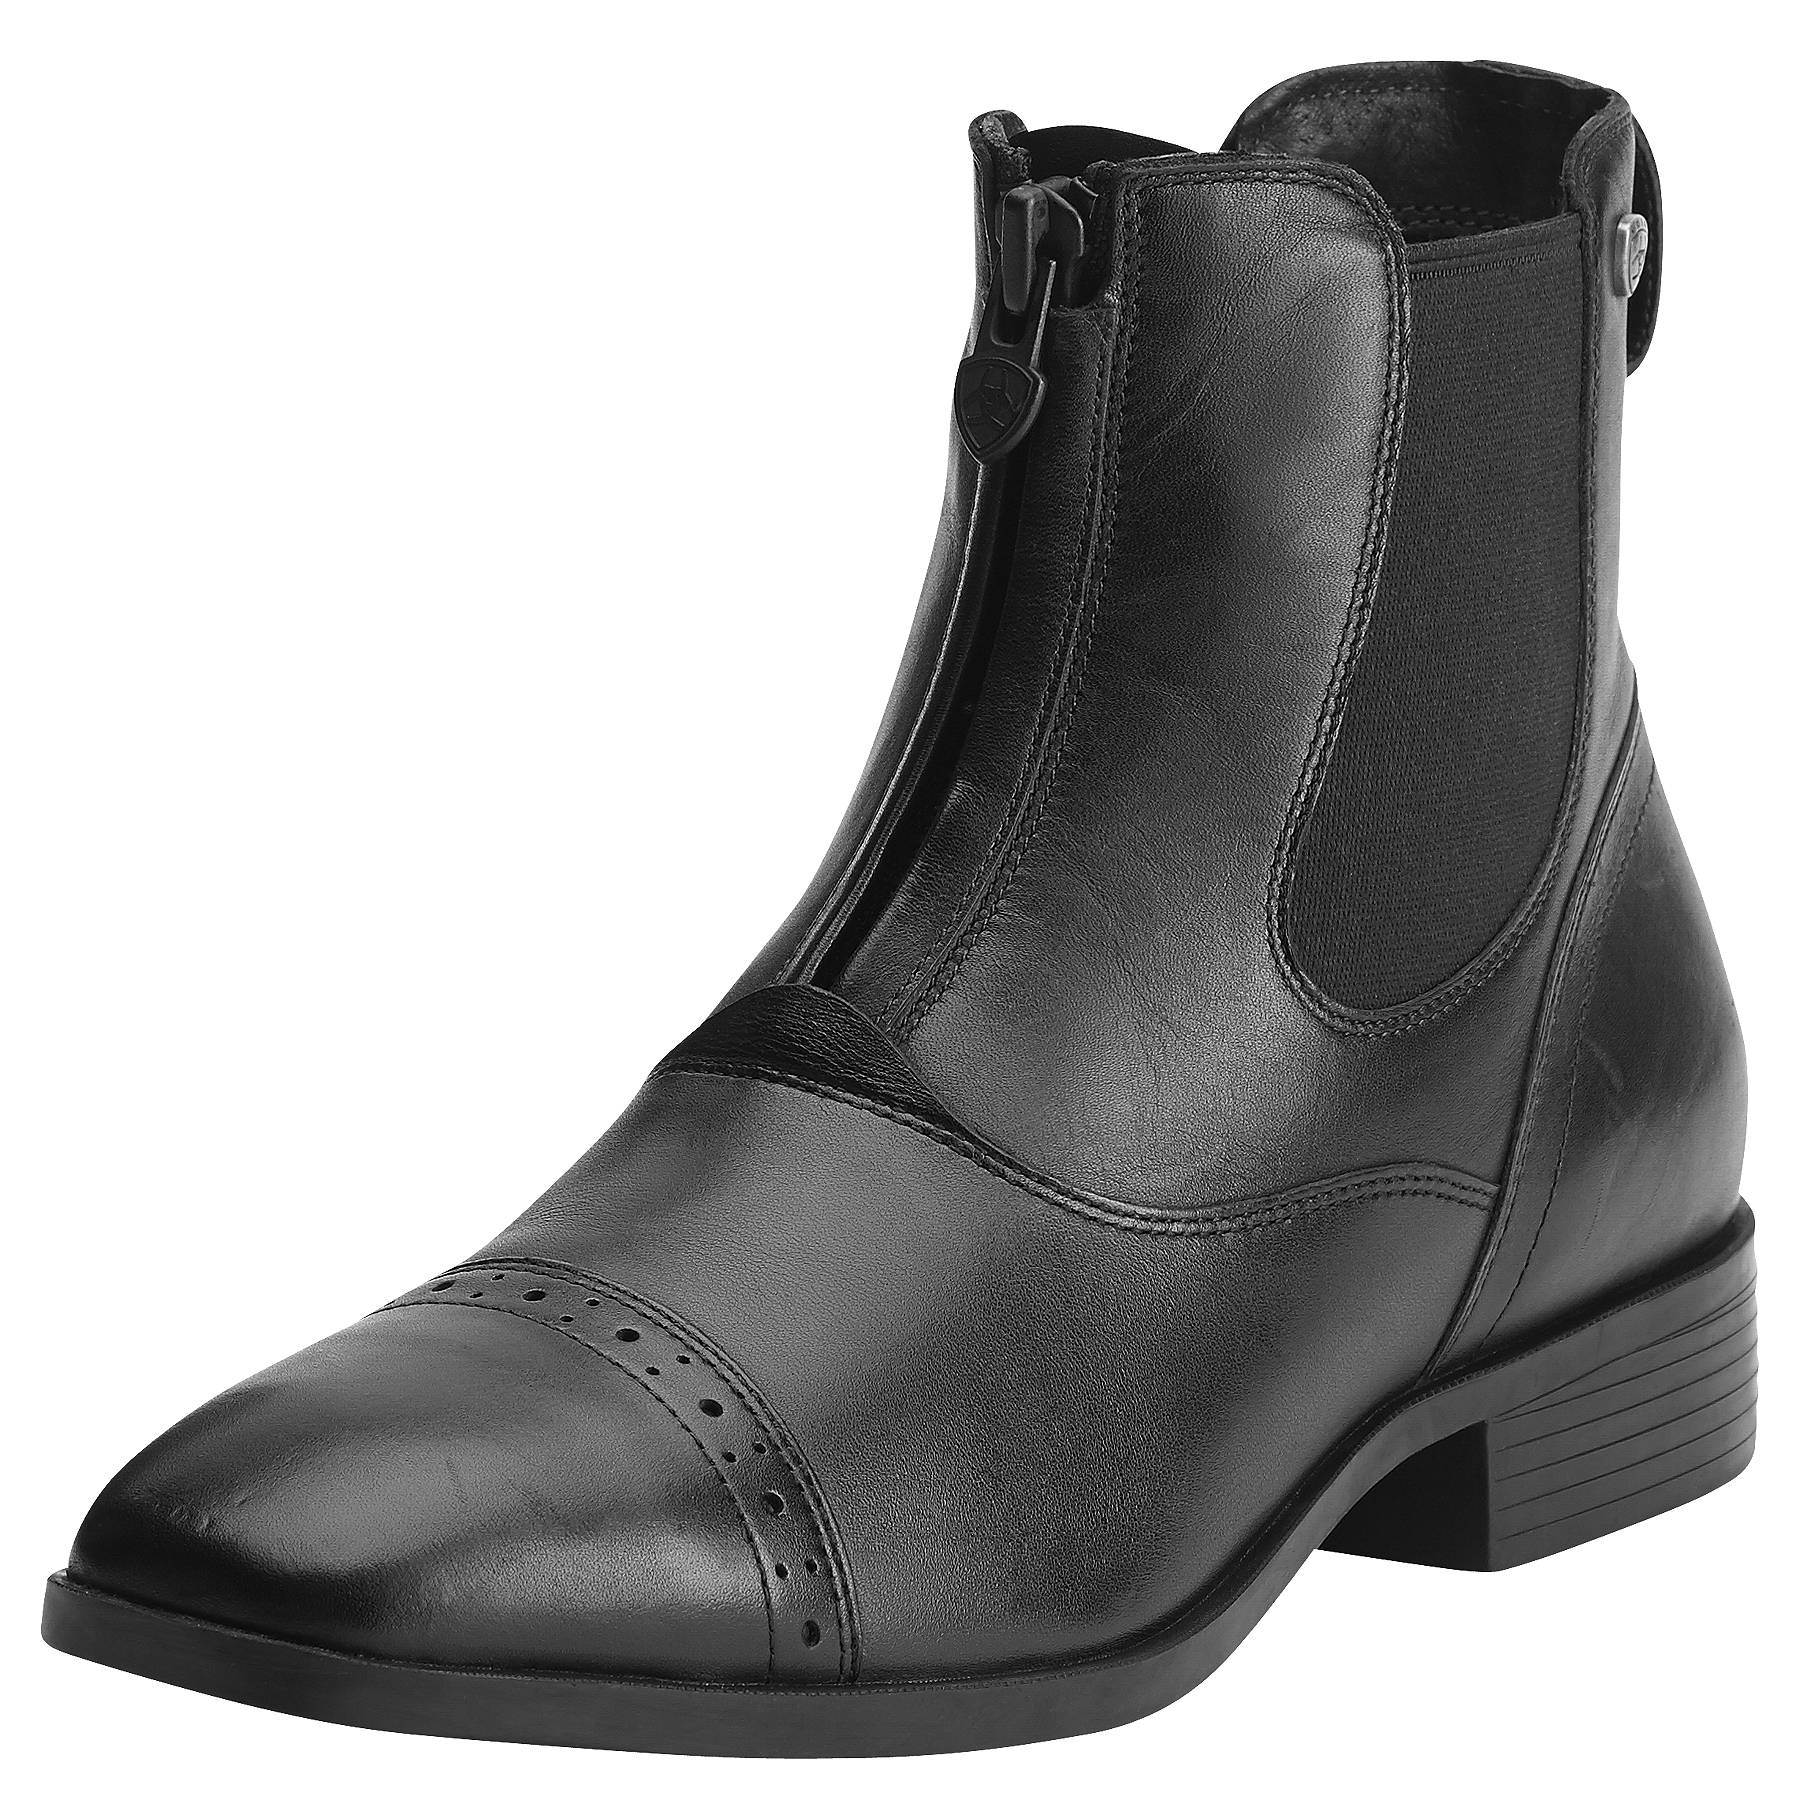 Ariat Challenge Square Toe Zip Paddock - Ladies, Black